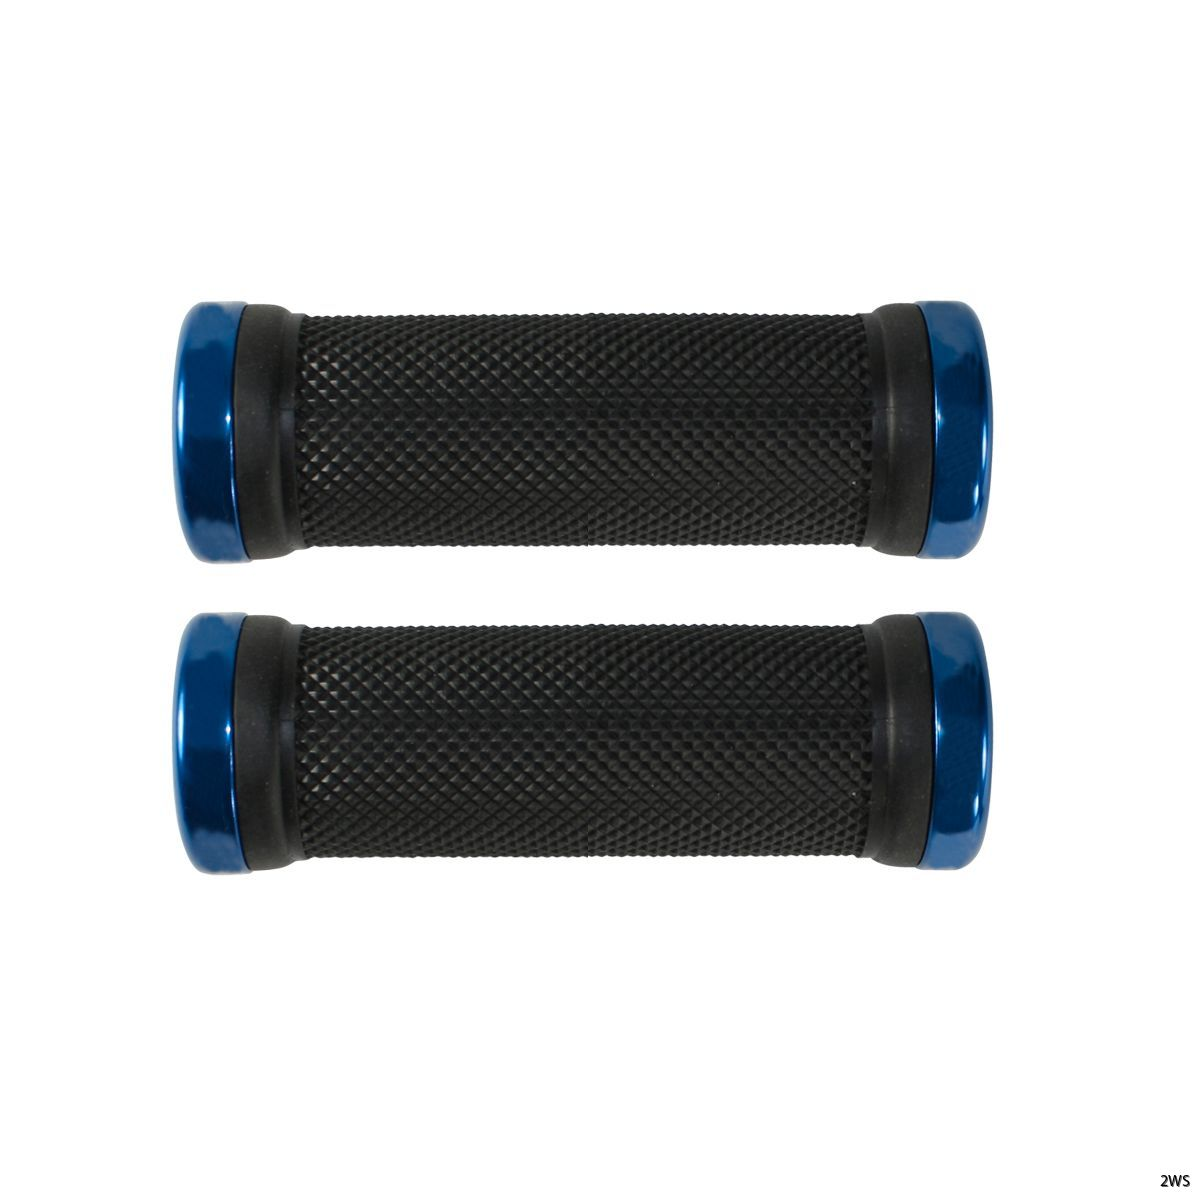 position-one-grips-95mm b